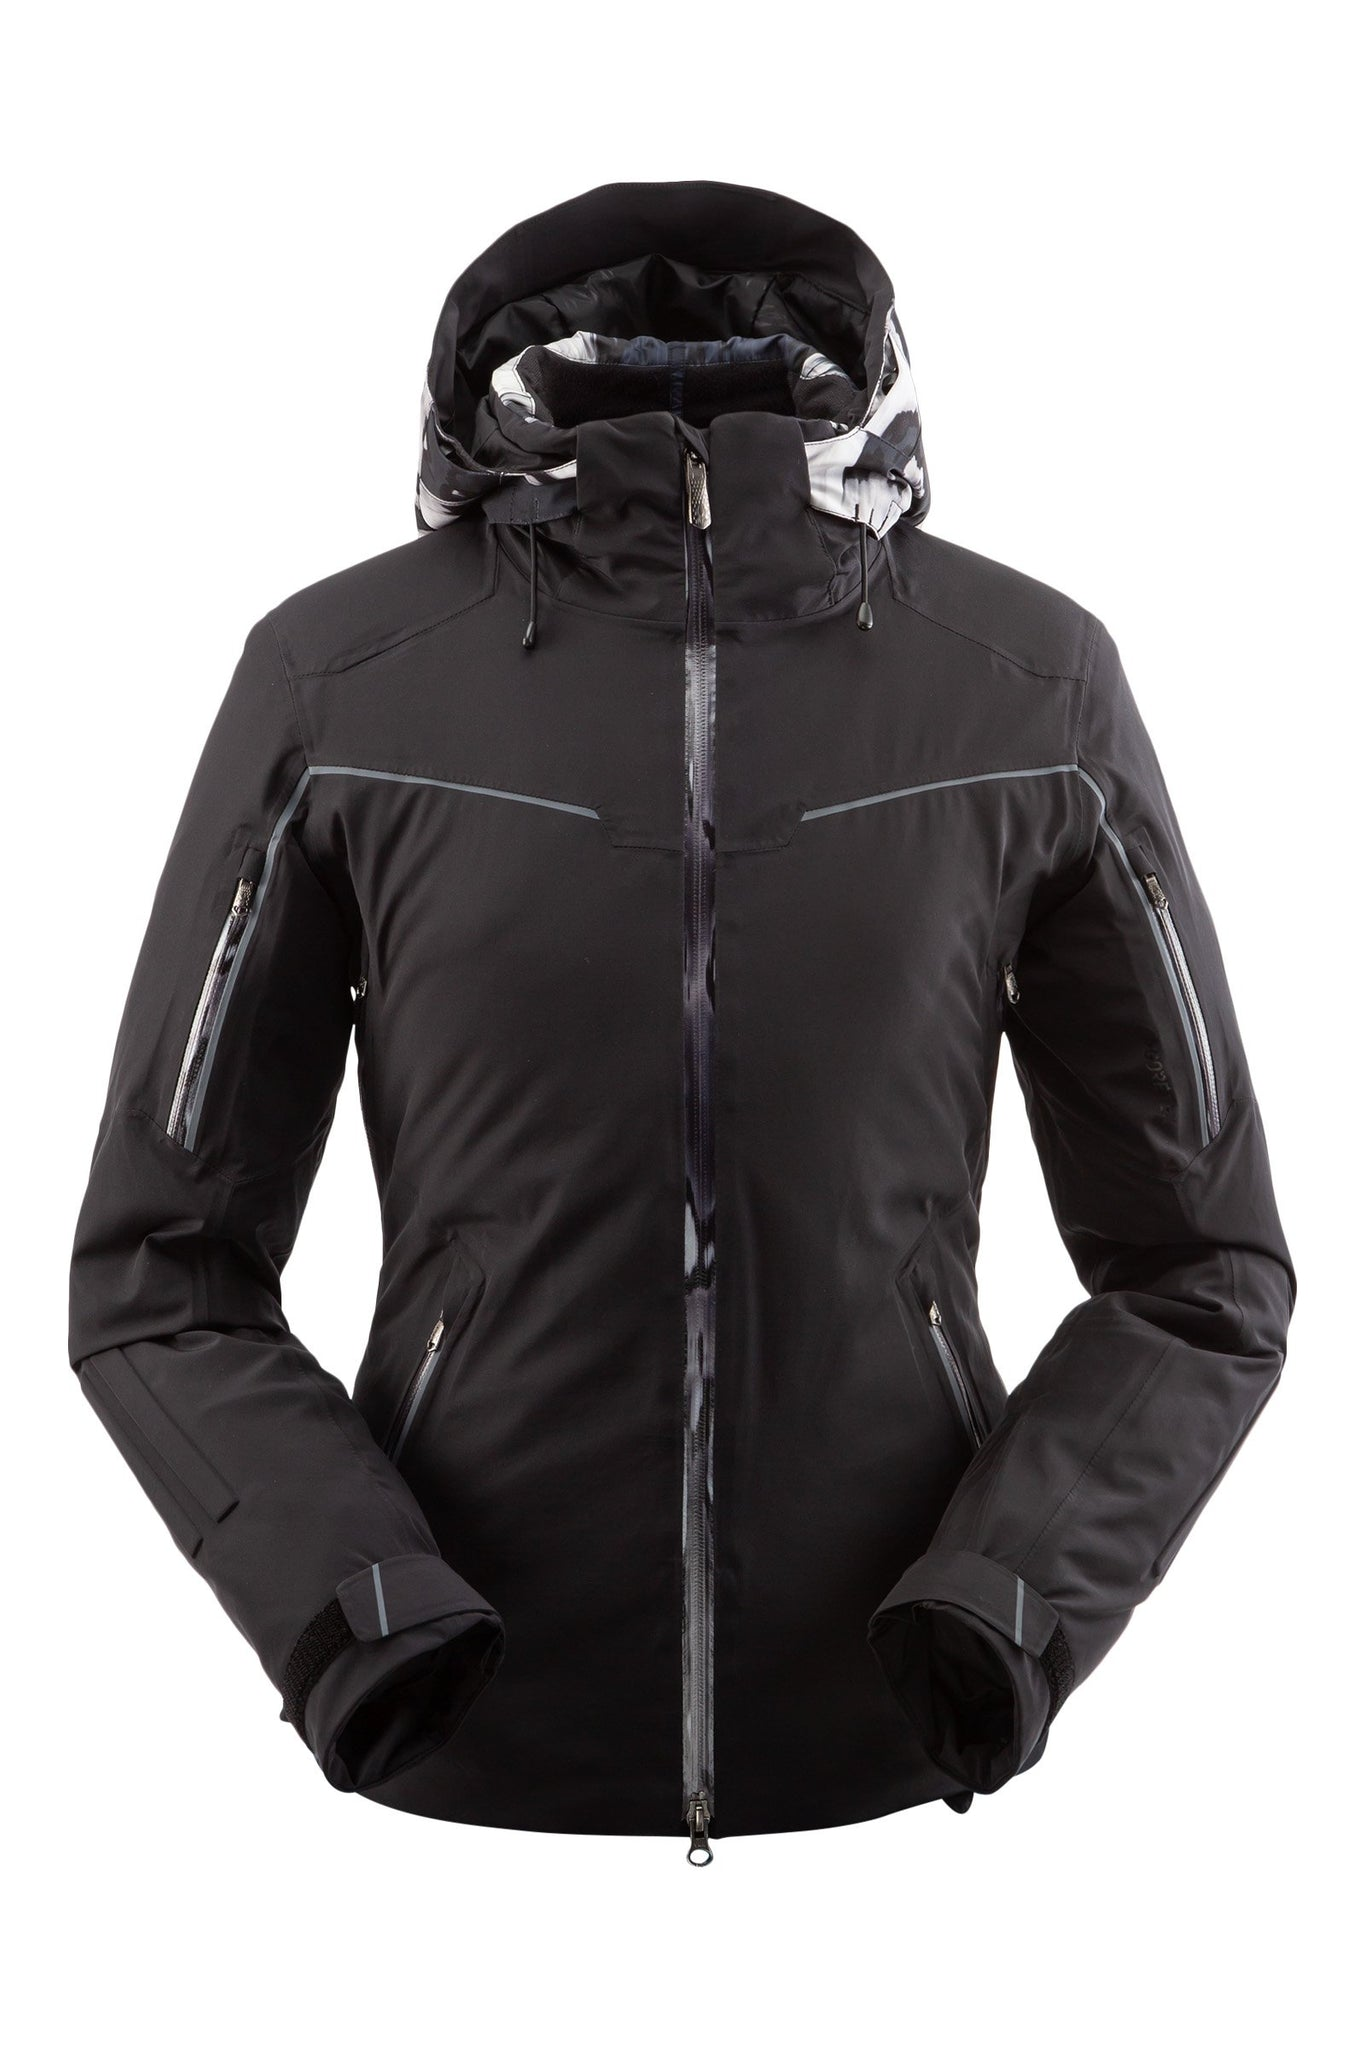 Spyder Brava GTX Ladies Jacket 2020